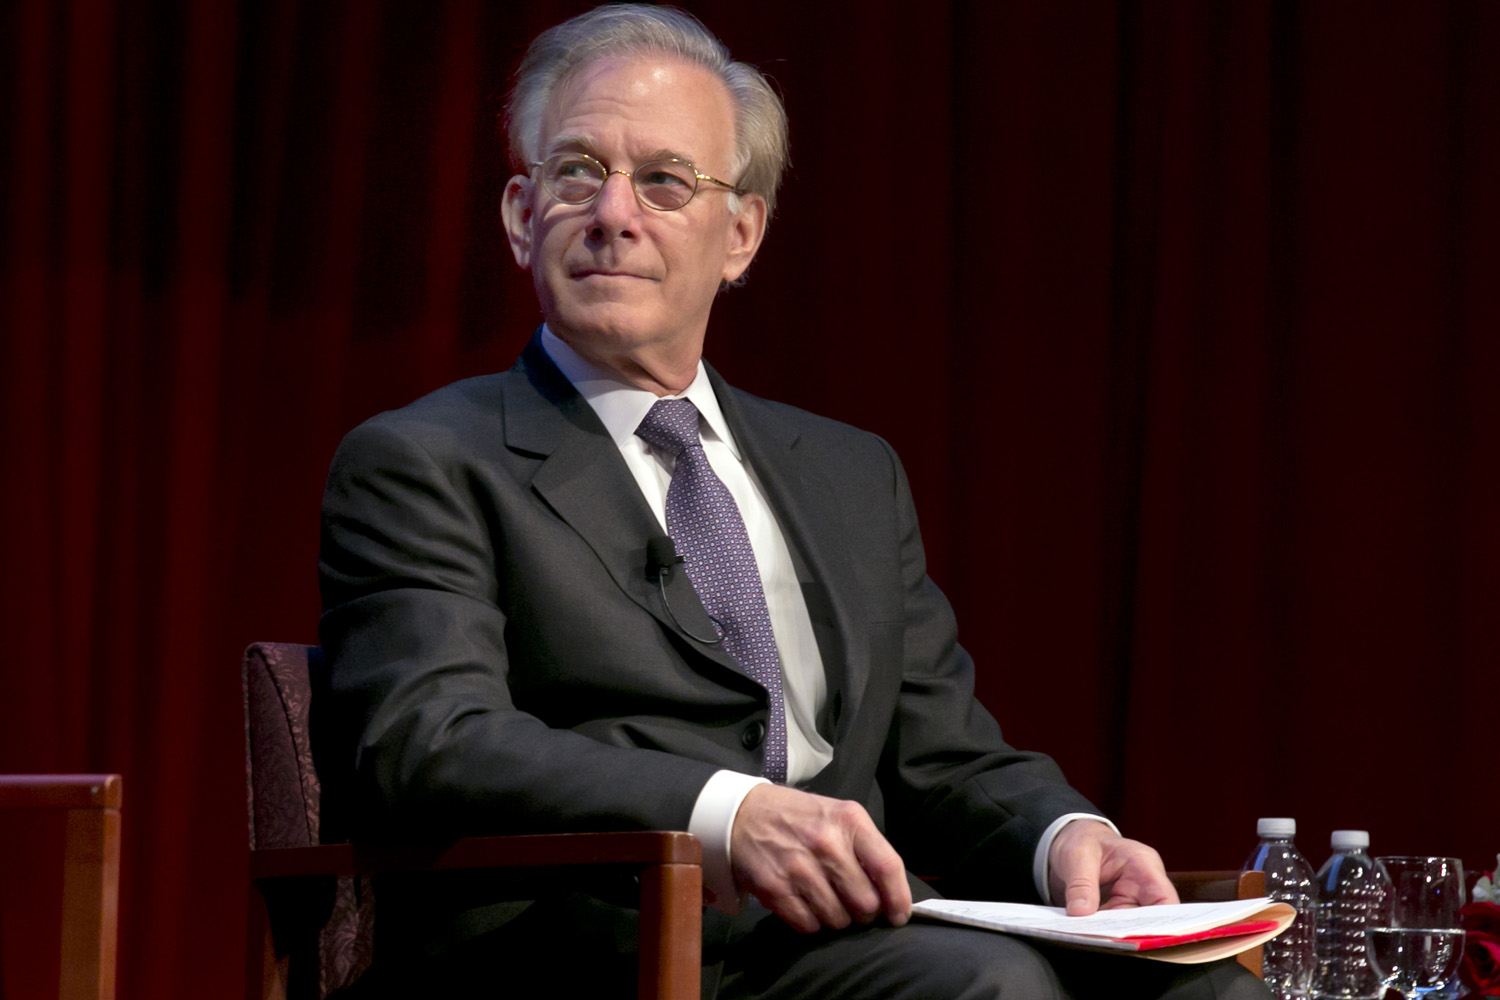 Washington Post columnist David Ignatius. (Richard Drew/AP)